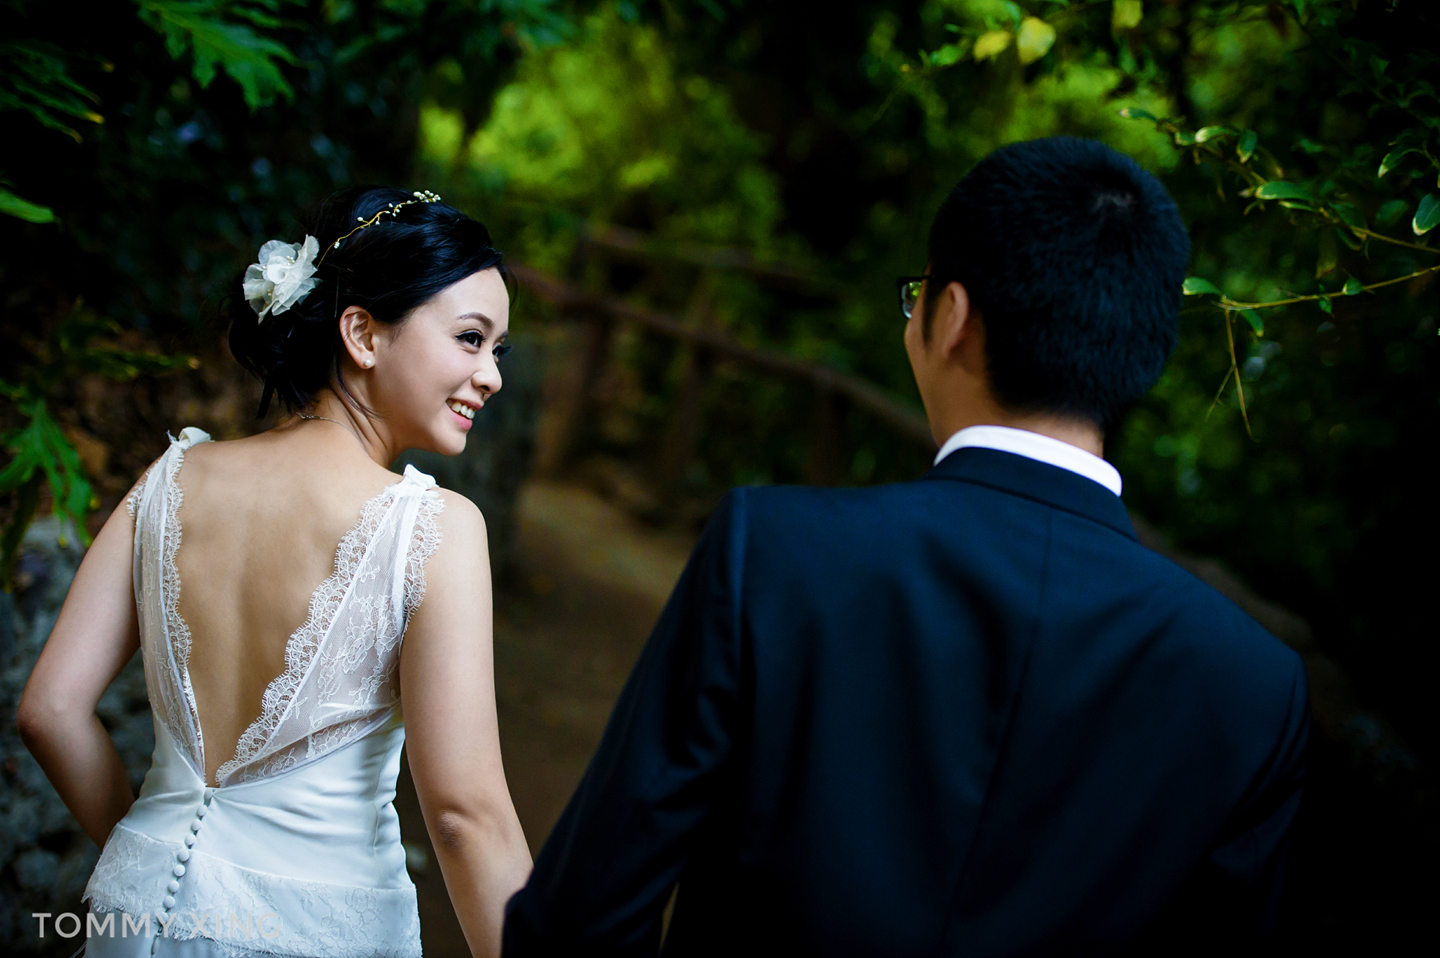 Los Angeles per-wedding 洛杉矶婚纱照 by Tommy Xing Photography 18.jpg